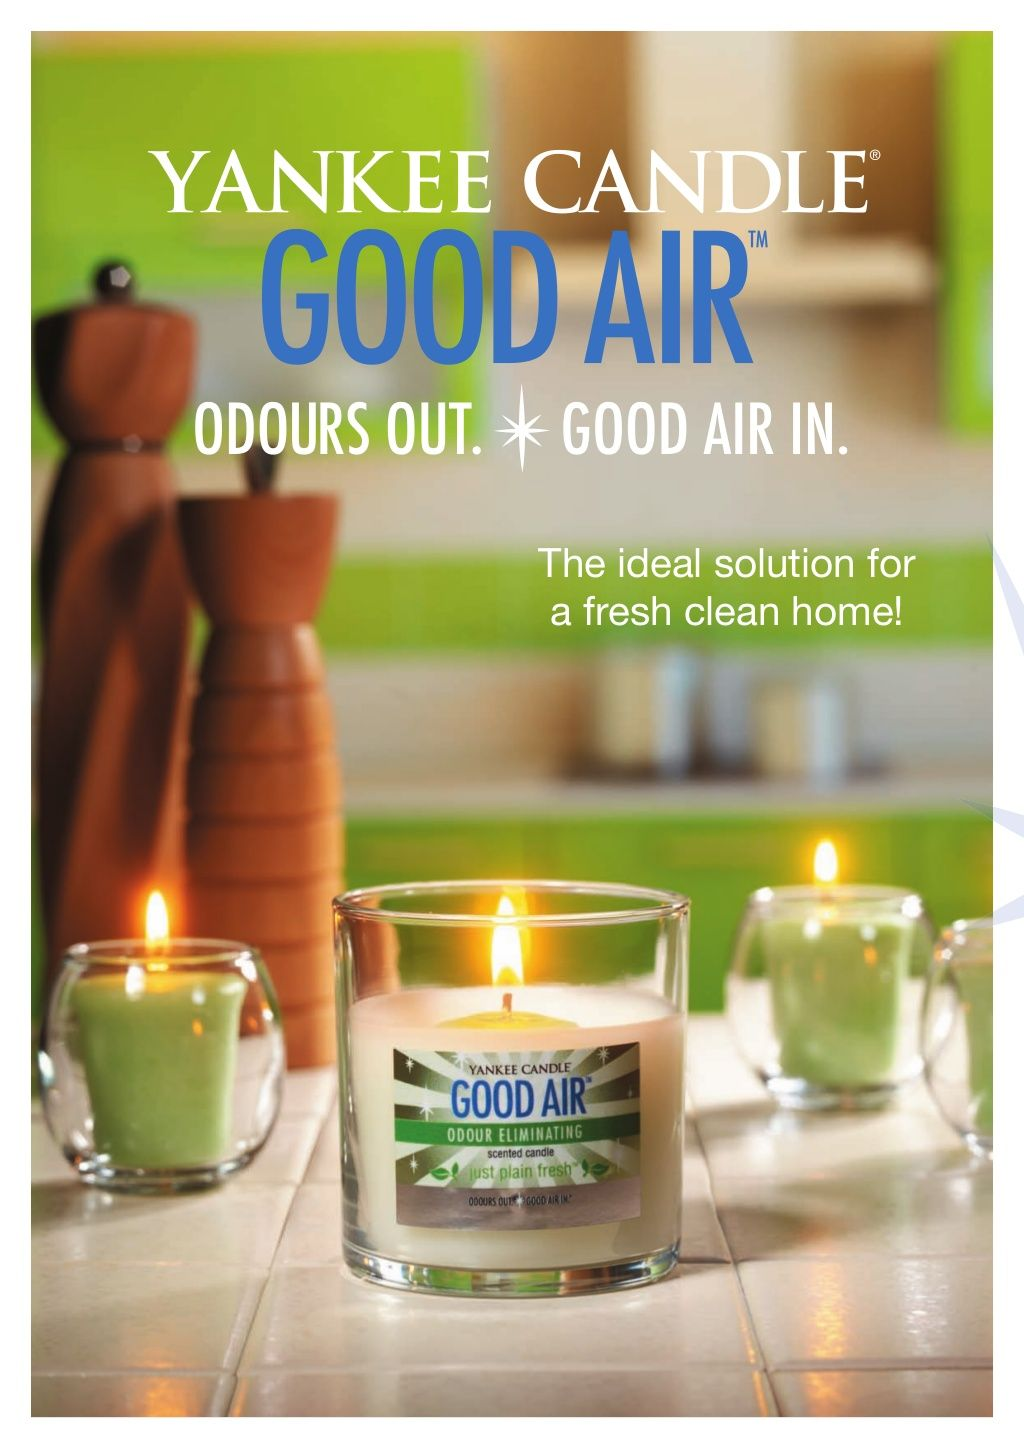 Have tried the good air candles and they are ok not my favorite